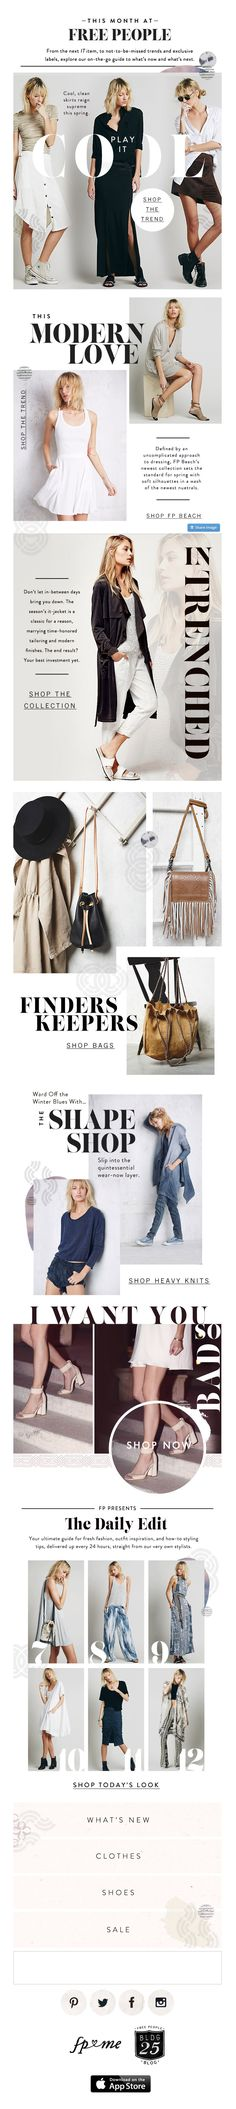 Free People | newsletter | fashion email | fashion design | email | email marketing | email inspiration | e-mail